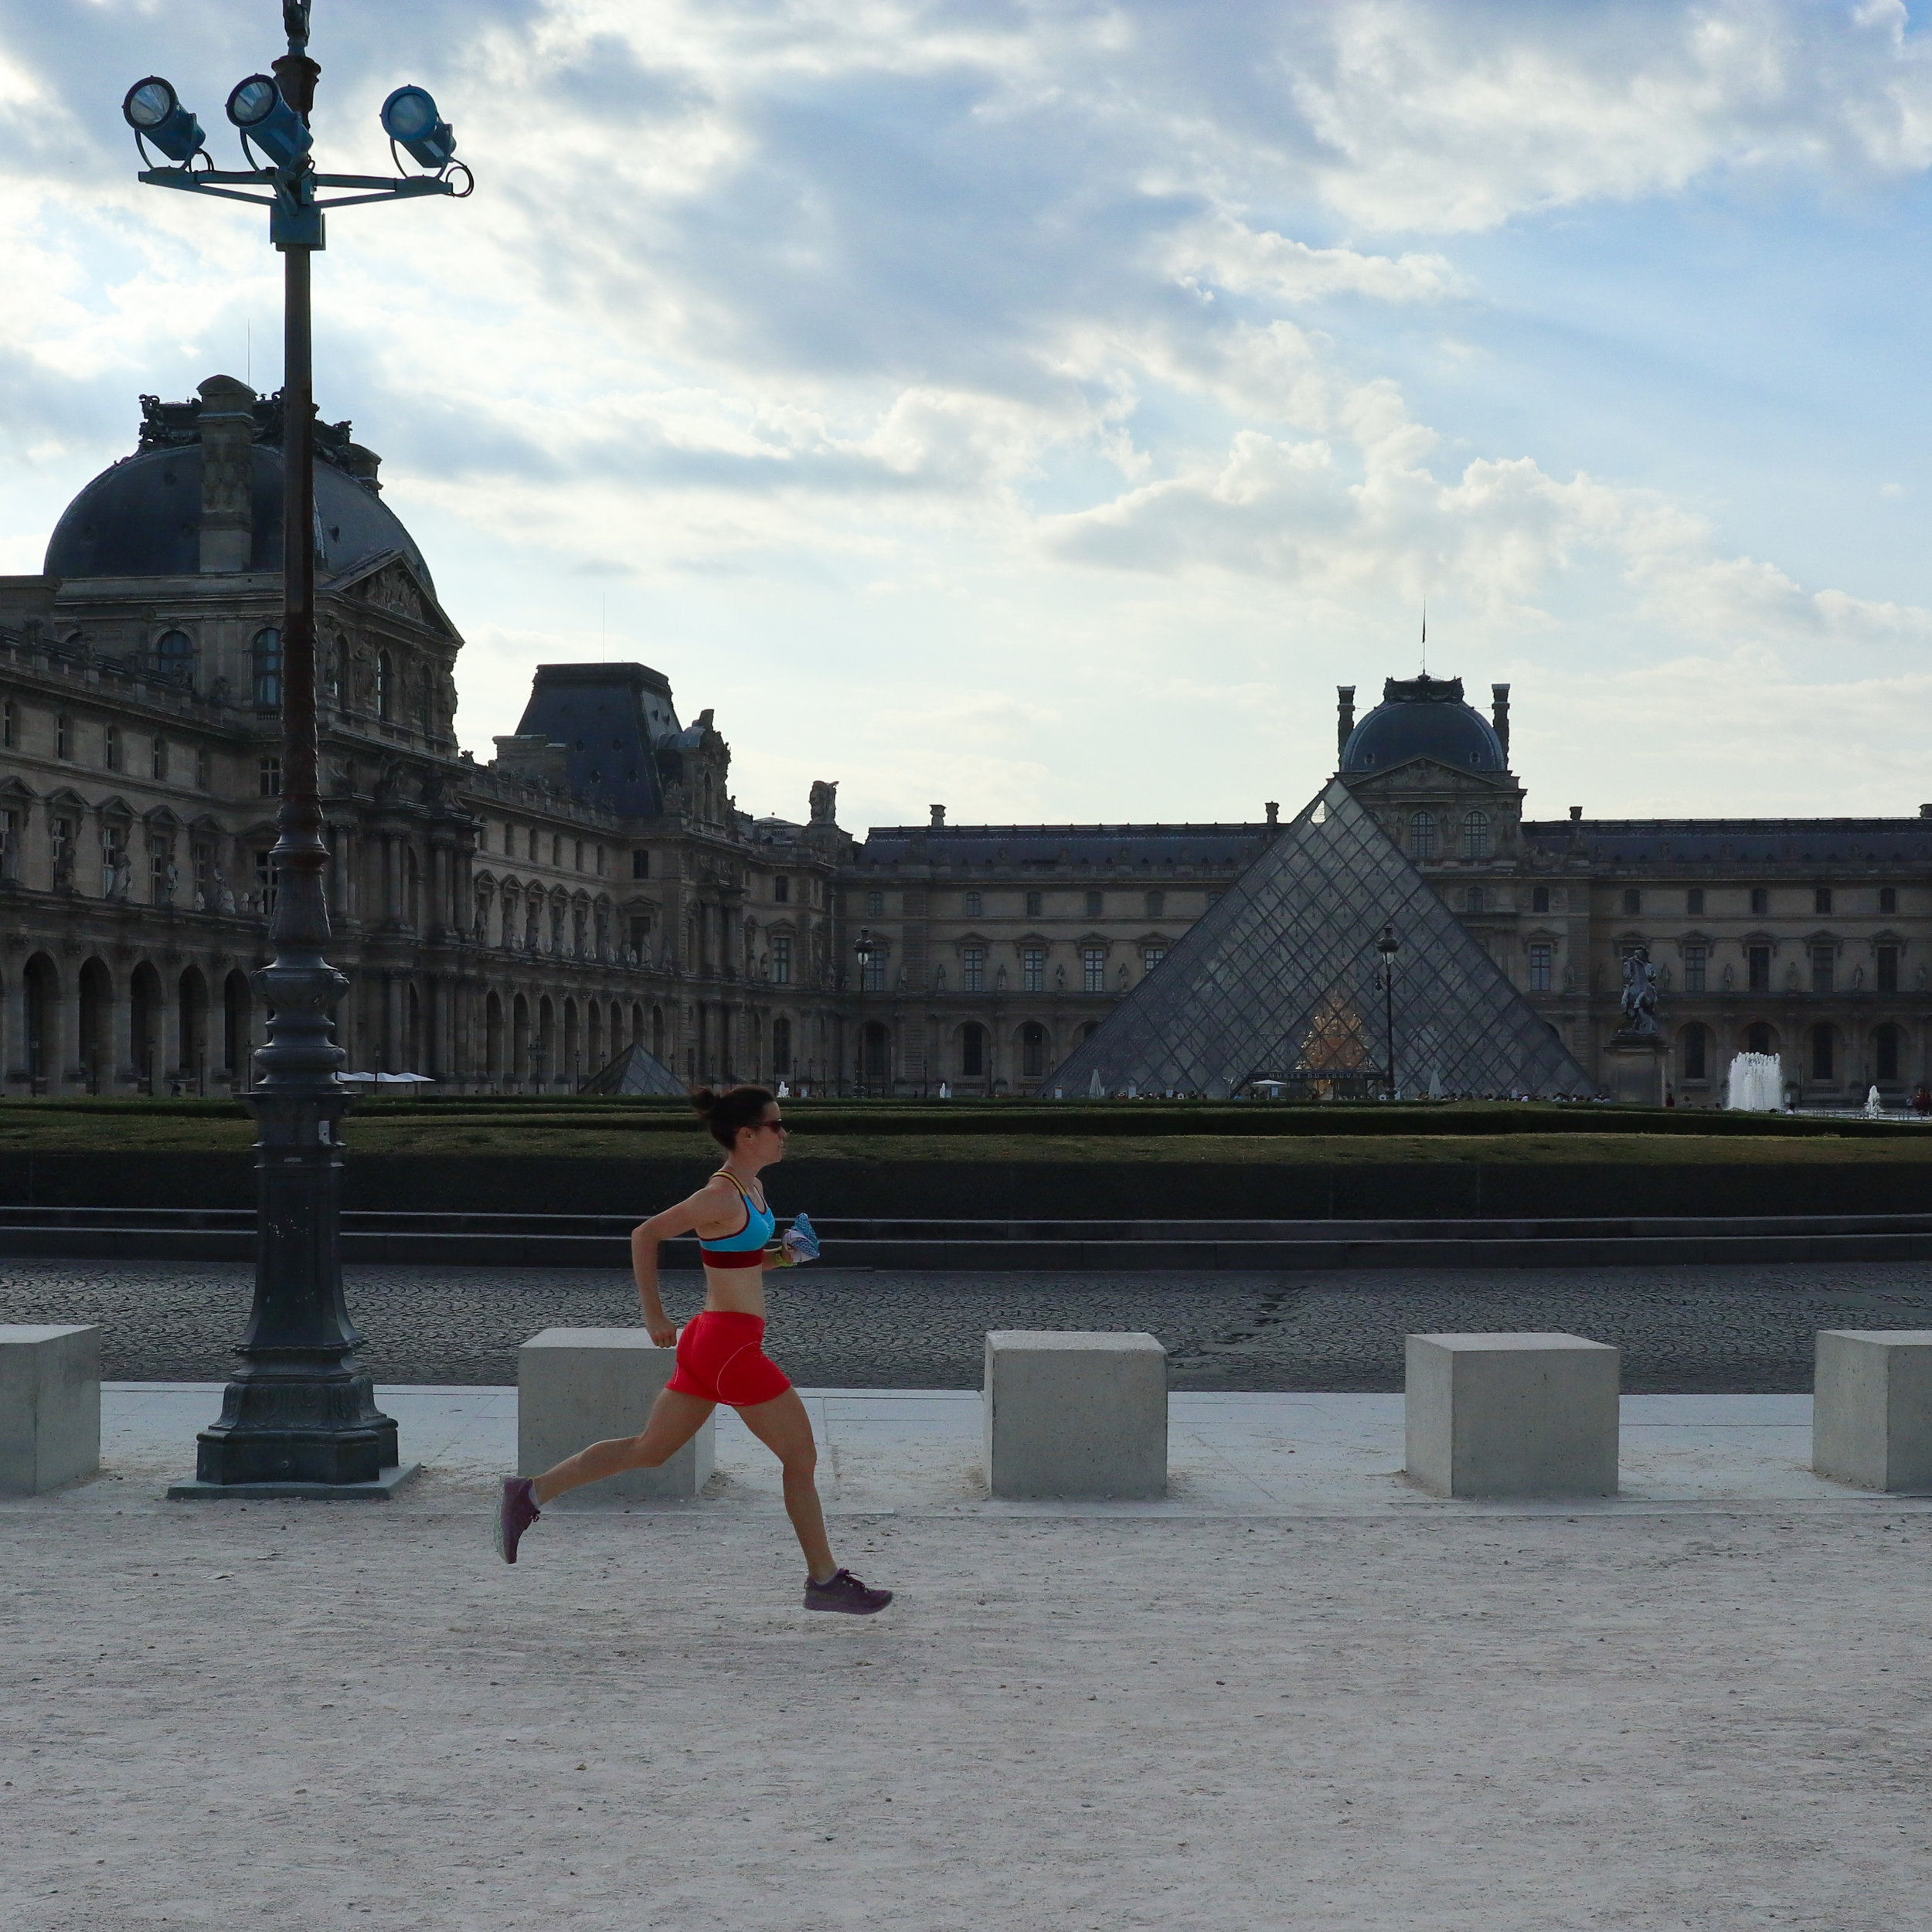 A lap around the Lourve.